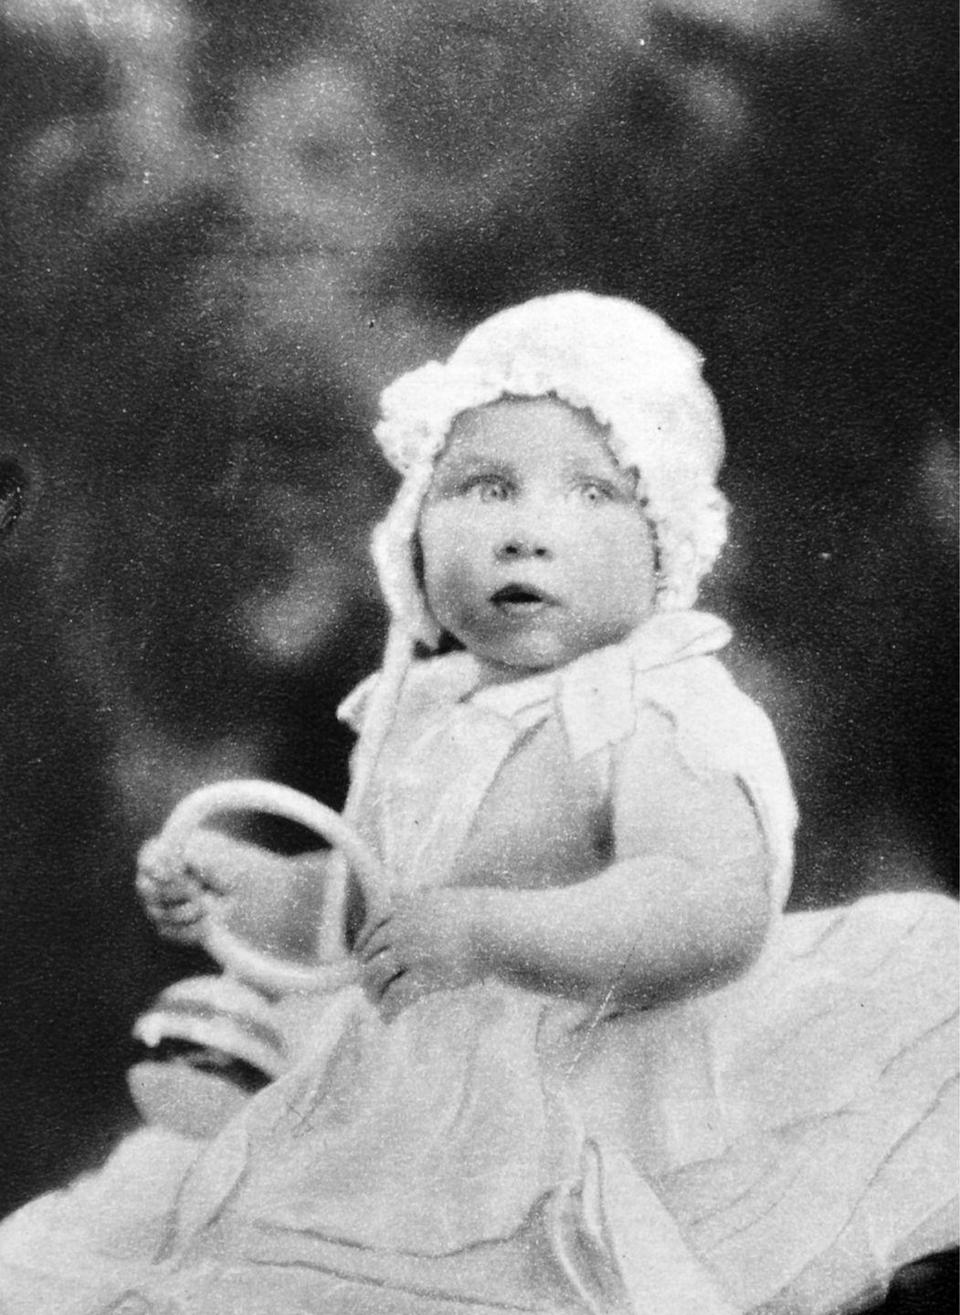 """<p>Princess Margaret, 5 months, plays with a rattle while posing for a photo in 1930. In 2013, <a href=""""http://royalcentral.co.uk/blogs/interview/princess-margarets-biographer-christopher-warwick-speaks-to-royal-central-16583"""" rel=""""nofollow noopener"""" target=""""_blank"""" data-ylk=""""slk:Margaret's biographer Christopher Warwick revealed"""" class=""""link rapid-noclick-resp"""">Margaret's biographer Christopher Warwick revealed</a> that the princess most enjoyed the drawing room at the palace. """"On the ground floor, there were 4 reception rooms–the Drawing Room, Dining Room, Library and Garden Room–all of which overlooked a spacious and well-stocked walled garden. But as the main living area in the house, the Drawing Room was where the Princess spent much of her time.""""</p>"""